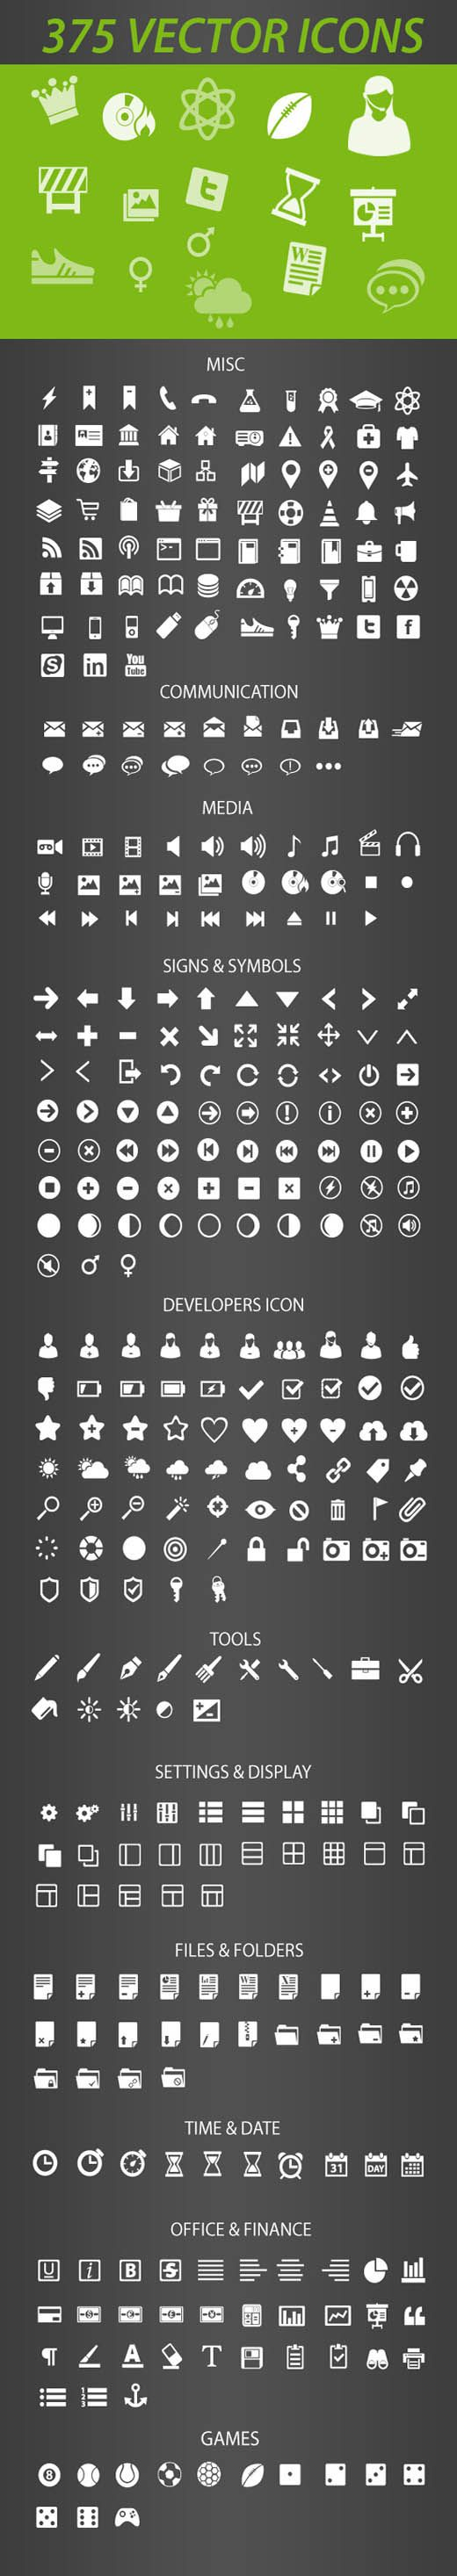 Free Icon Pack 375 Retina-Display-Ready Icons - Free Vector Site | Download Free Vector Art, Graphics